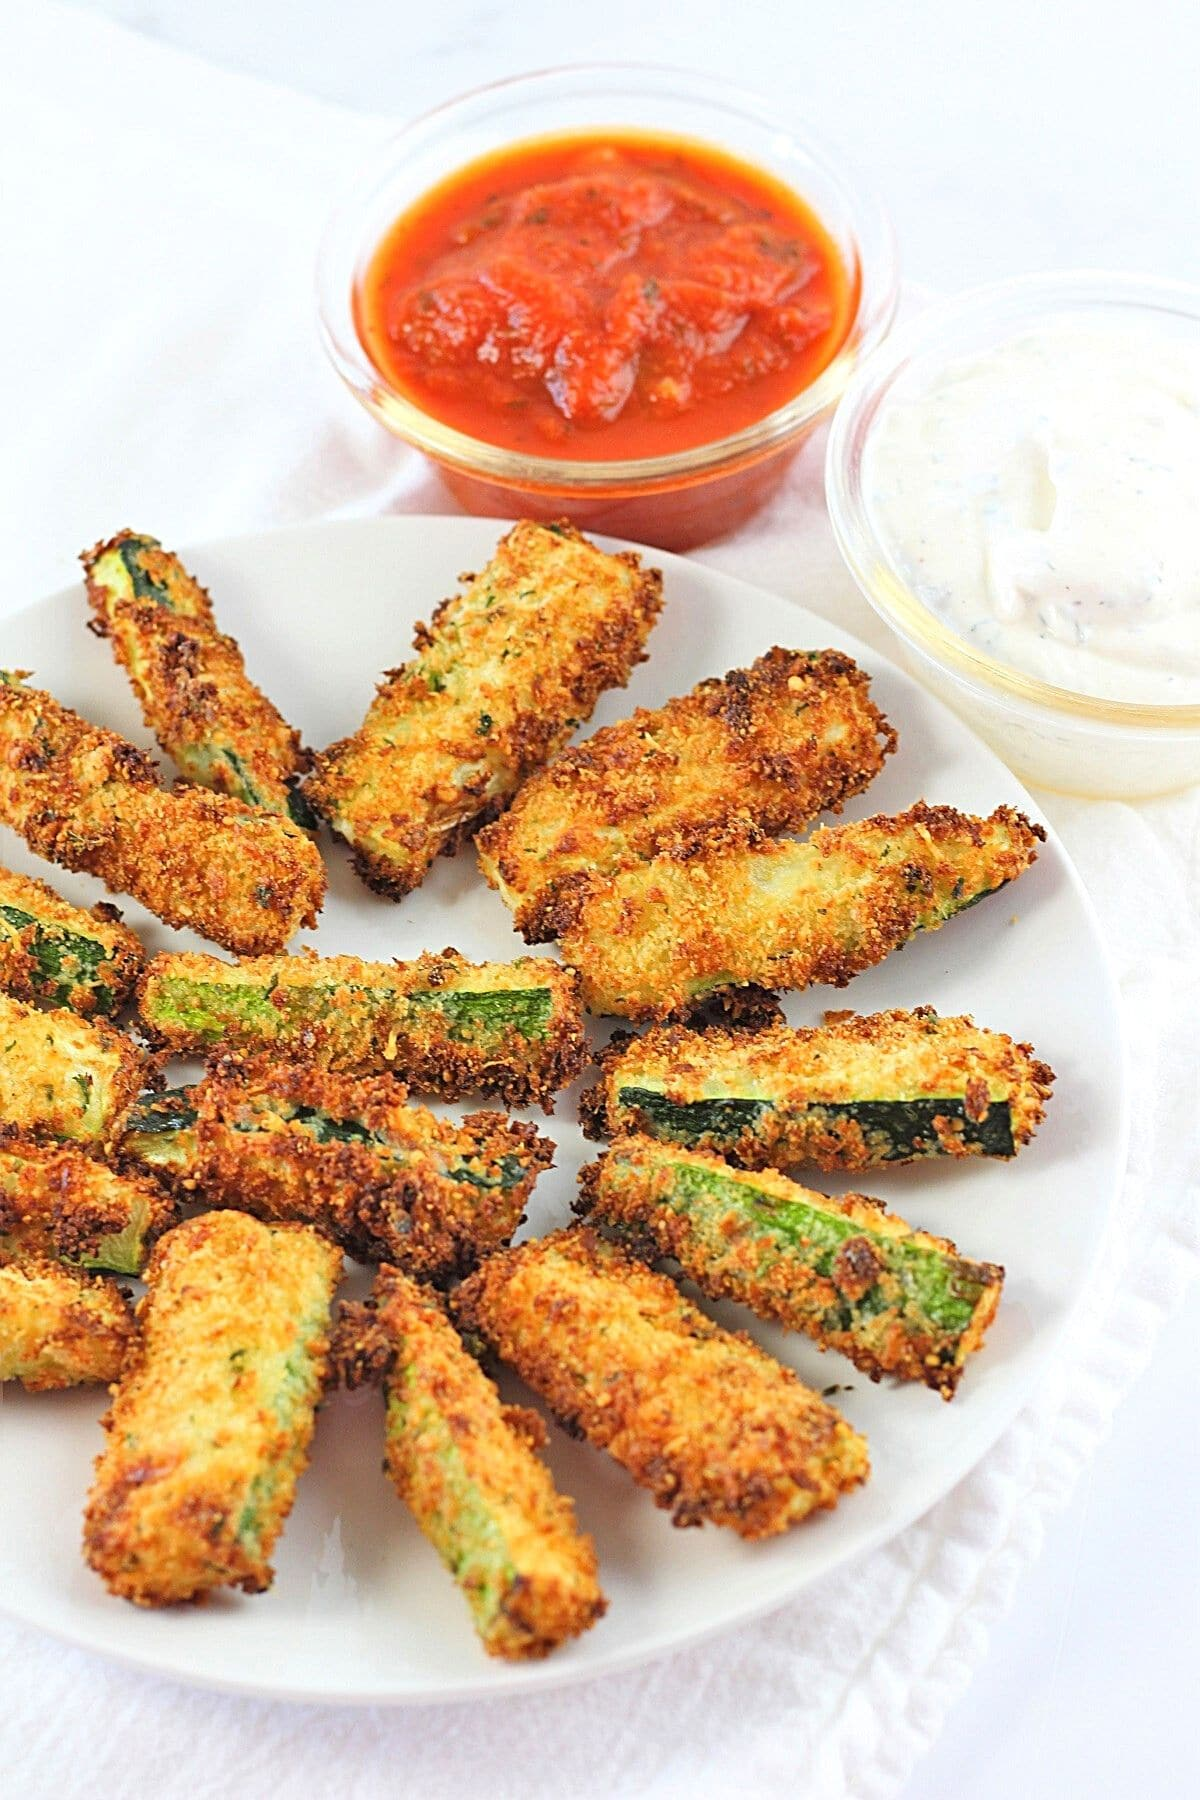 crispy breaded air fryer zucchini sticks on a white plate with small bowls of marinara sauce and ranch dip on the side